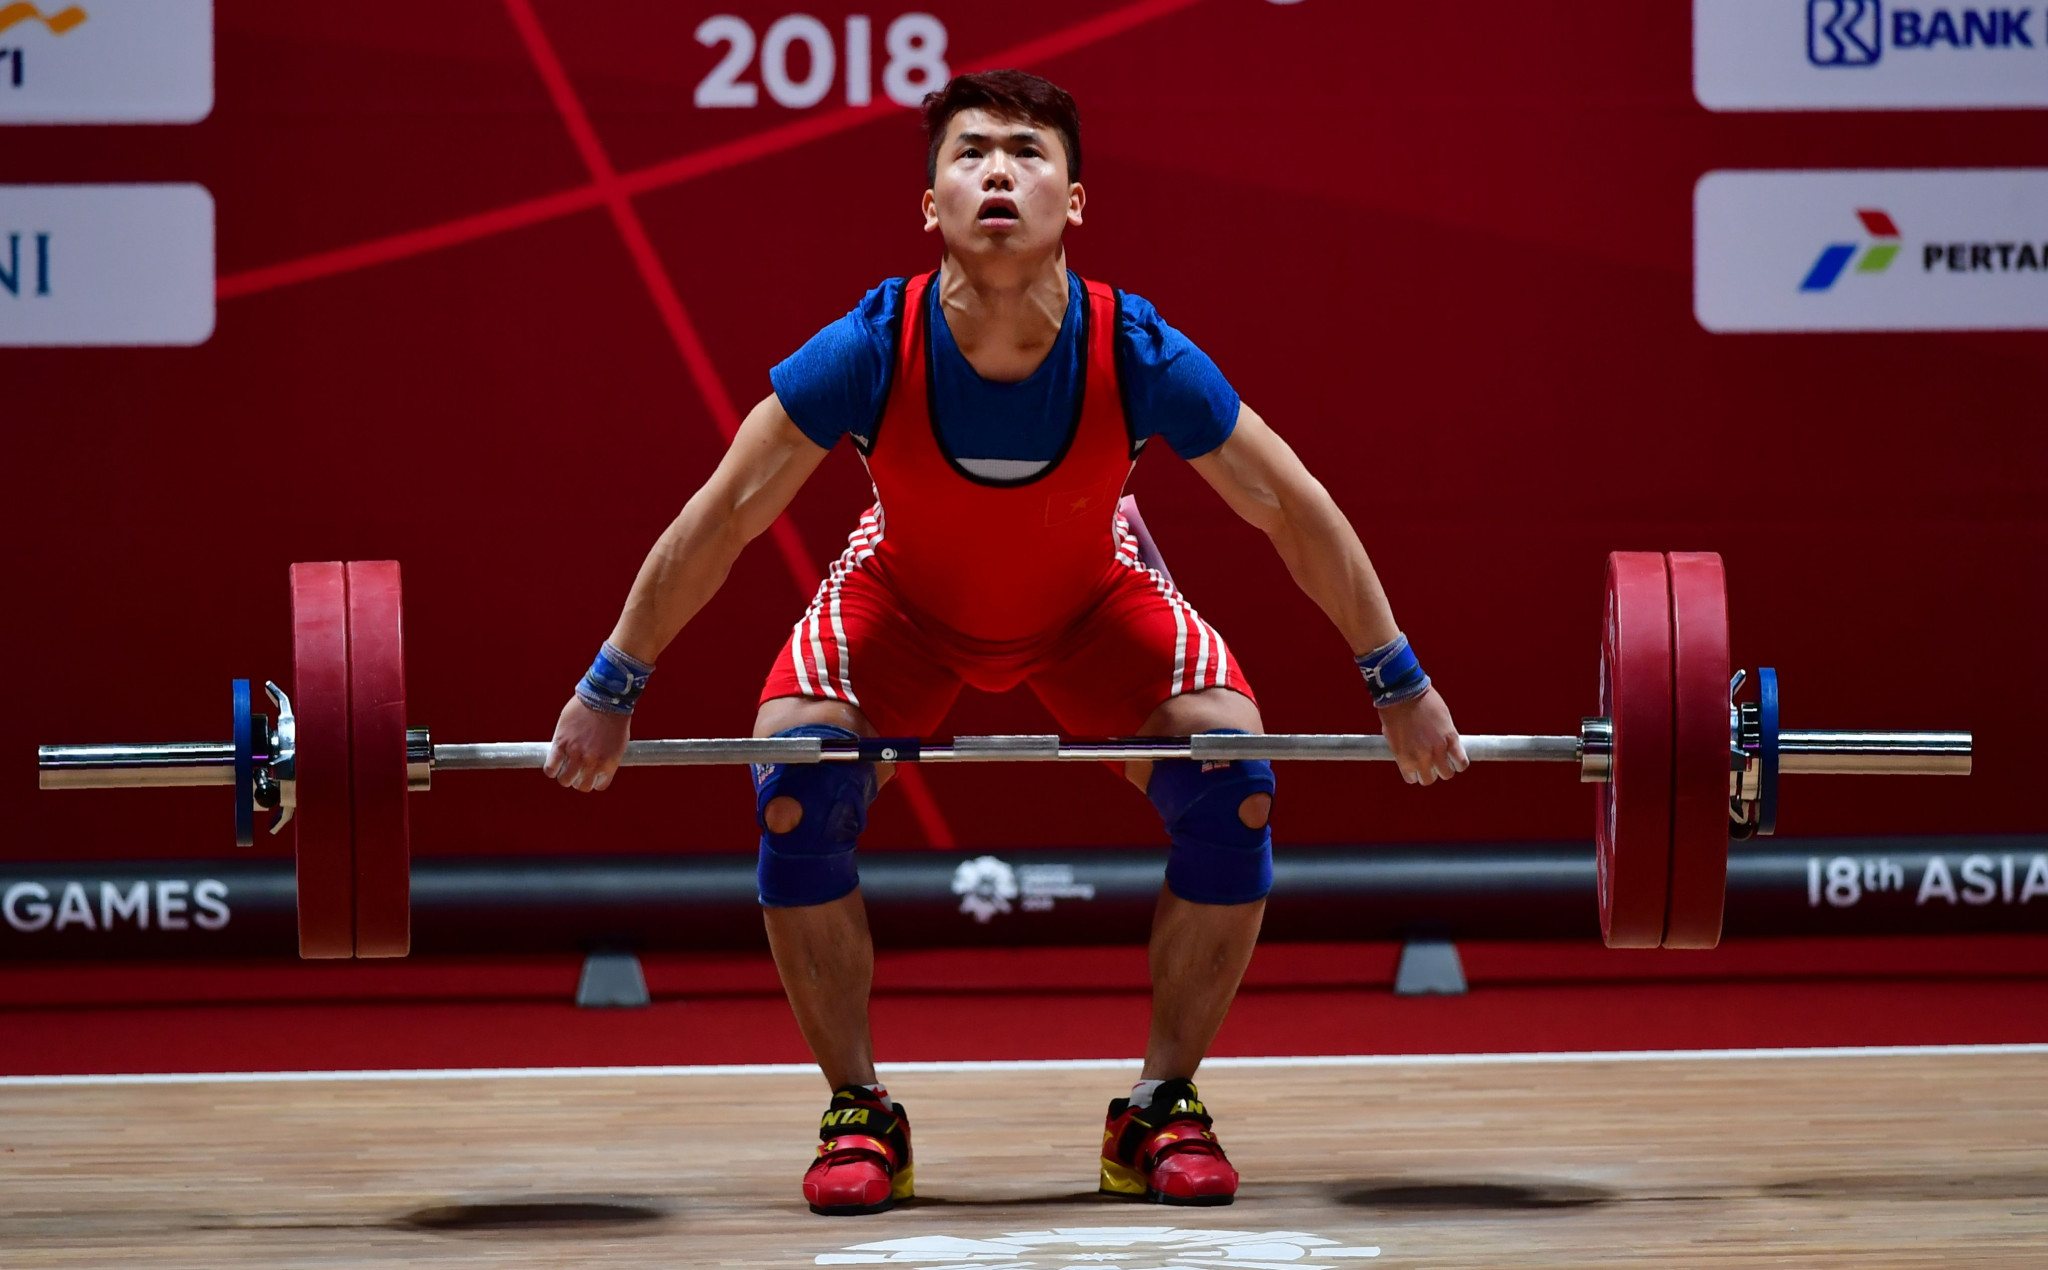 The case against the Weightlifting Federation of Vietnam concerns two men, one of whom is Van Vinh Trinh ©Getty Images